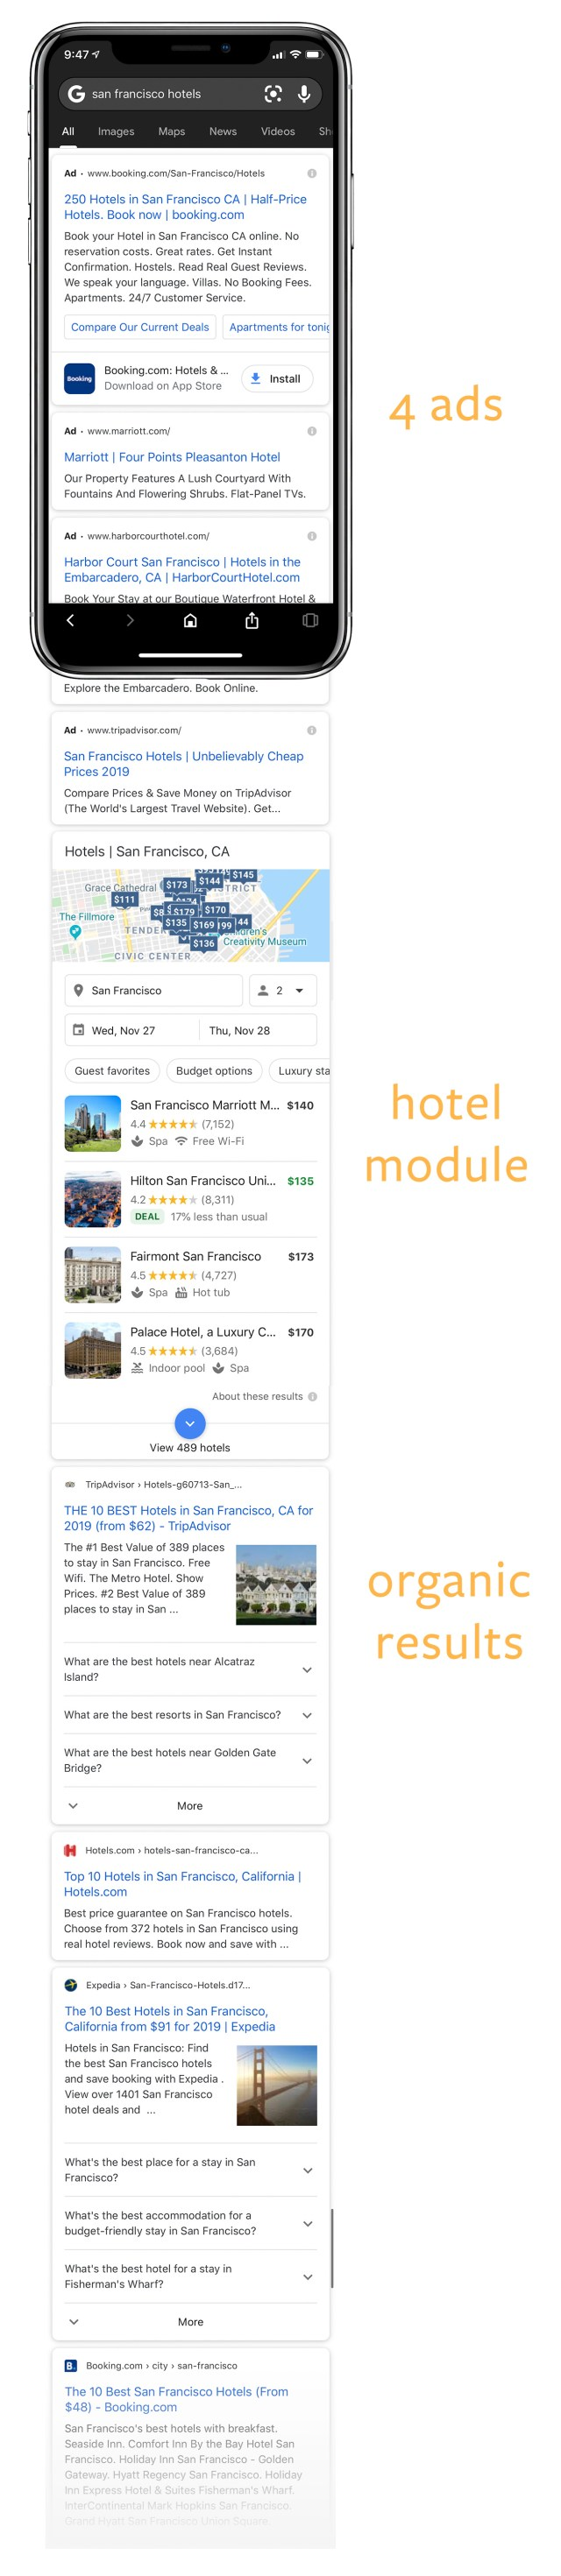 Google hotel search results